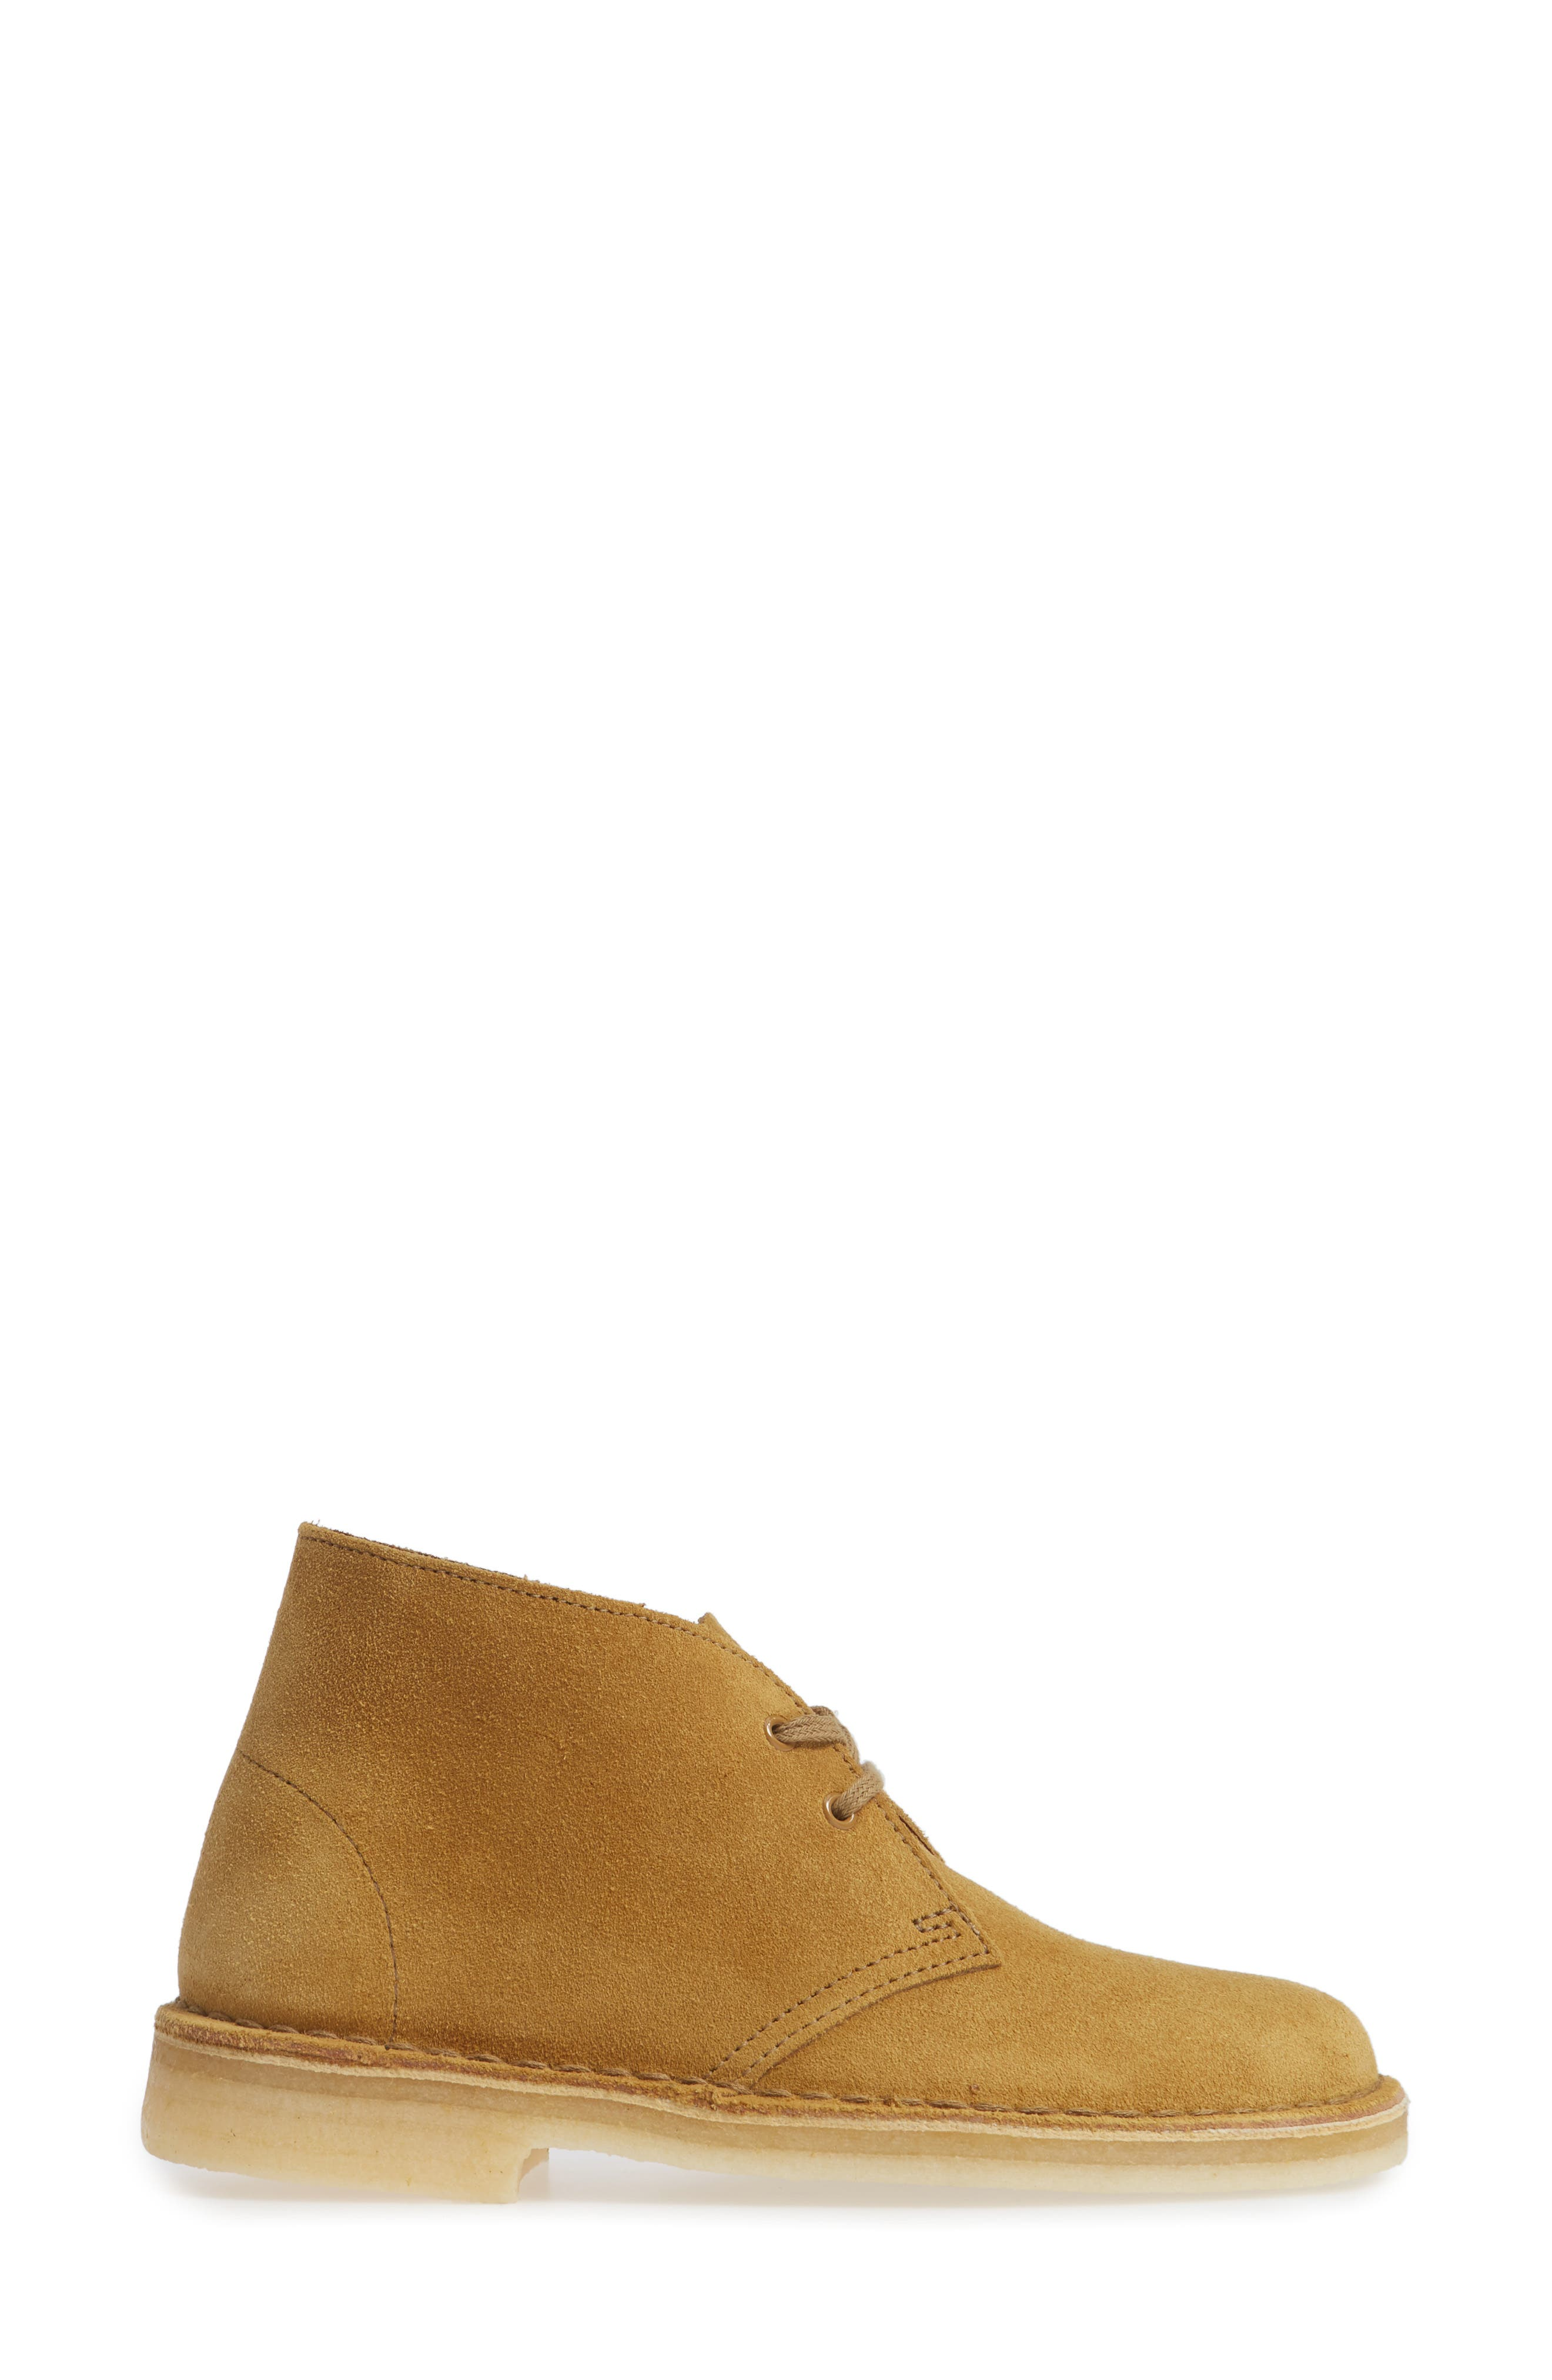 Desert Bootie,                             Alternate thumbnail 4, color,                             Oak Suede